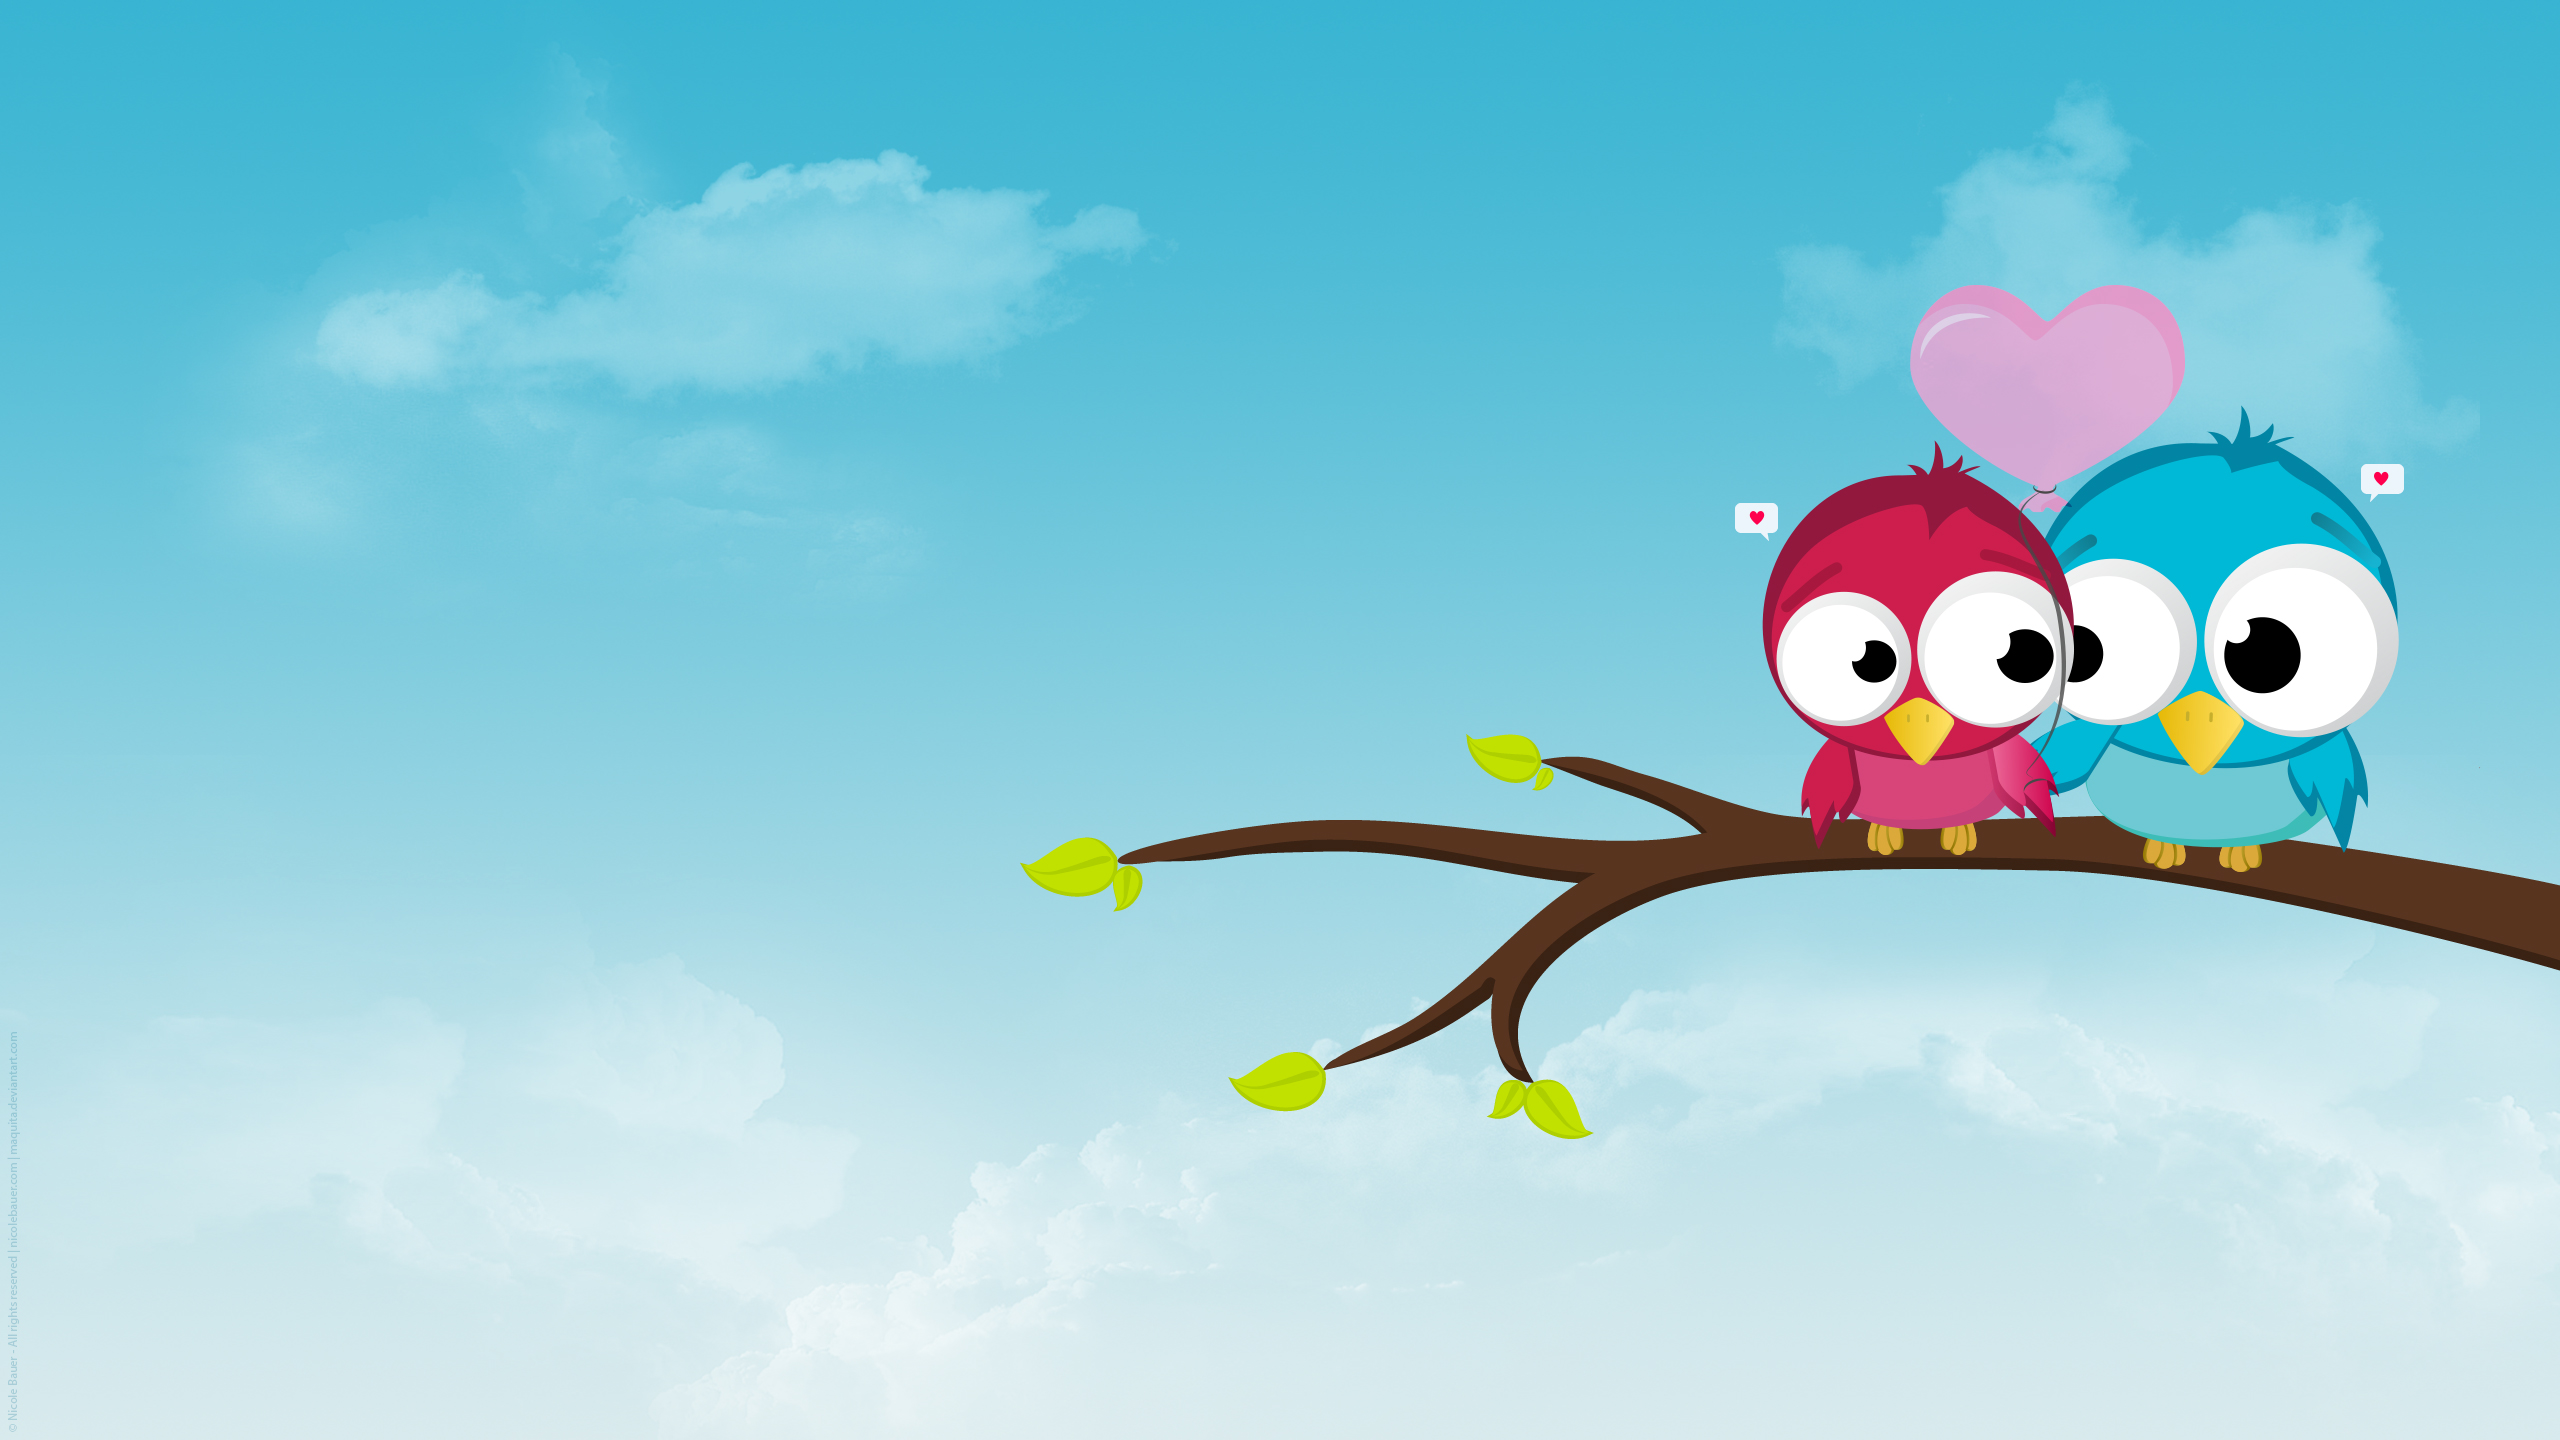 Cute Love Backgrounds   Wallpaper High Definition High Quality 2560x1440